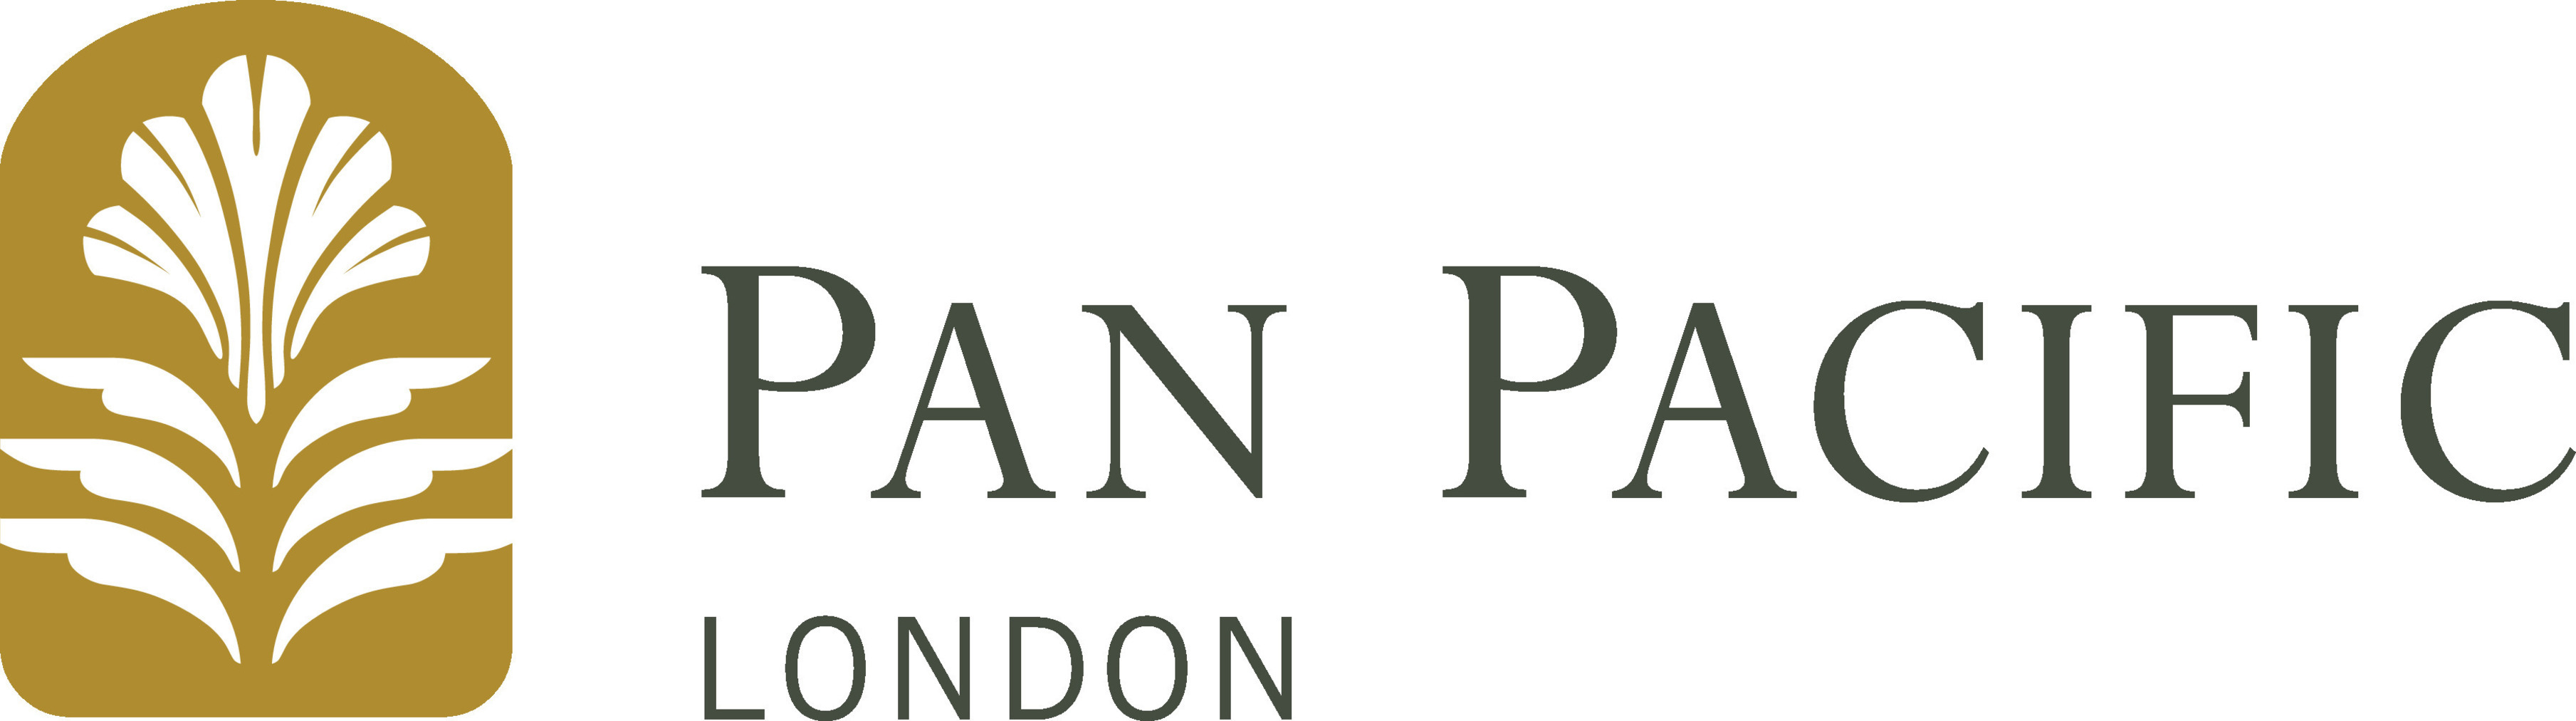 pan-pacific-logo